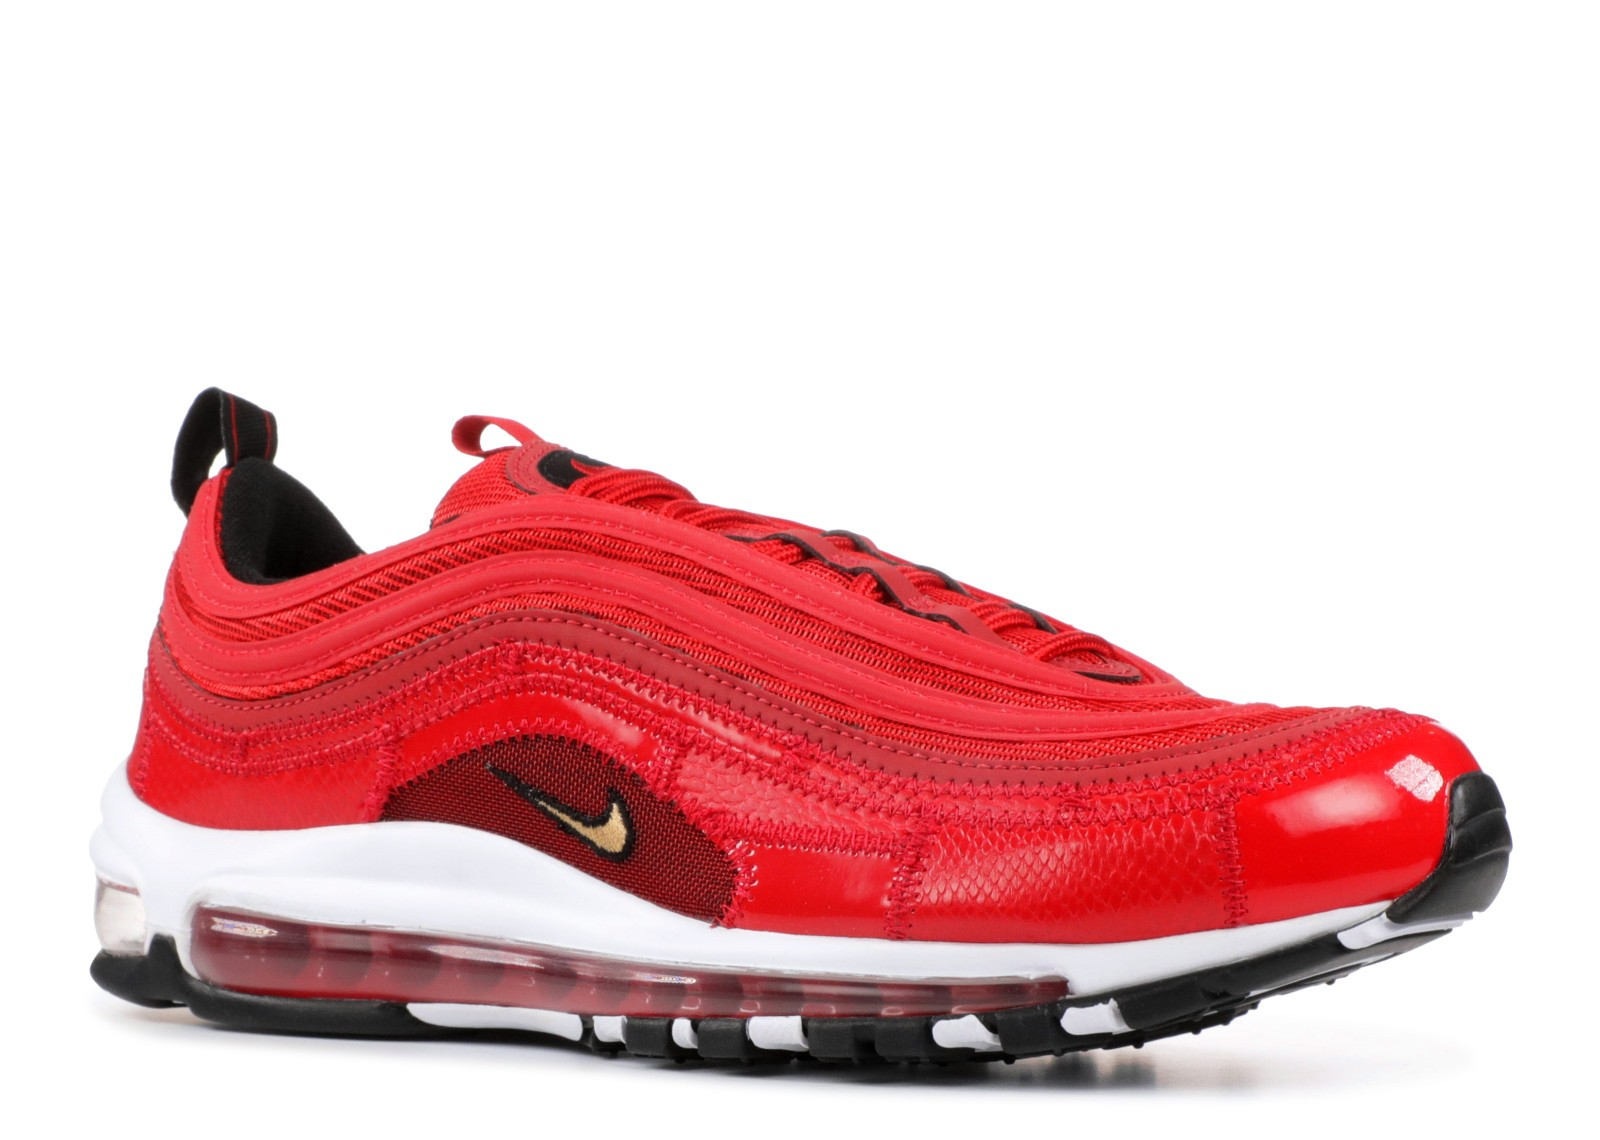 Nike Air Max 97 Cr7 Cristiano Ronaldo Portugal Patchwork University Gold Red Metallic AQ0655 600